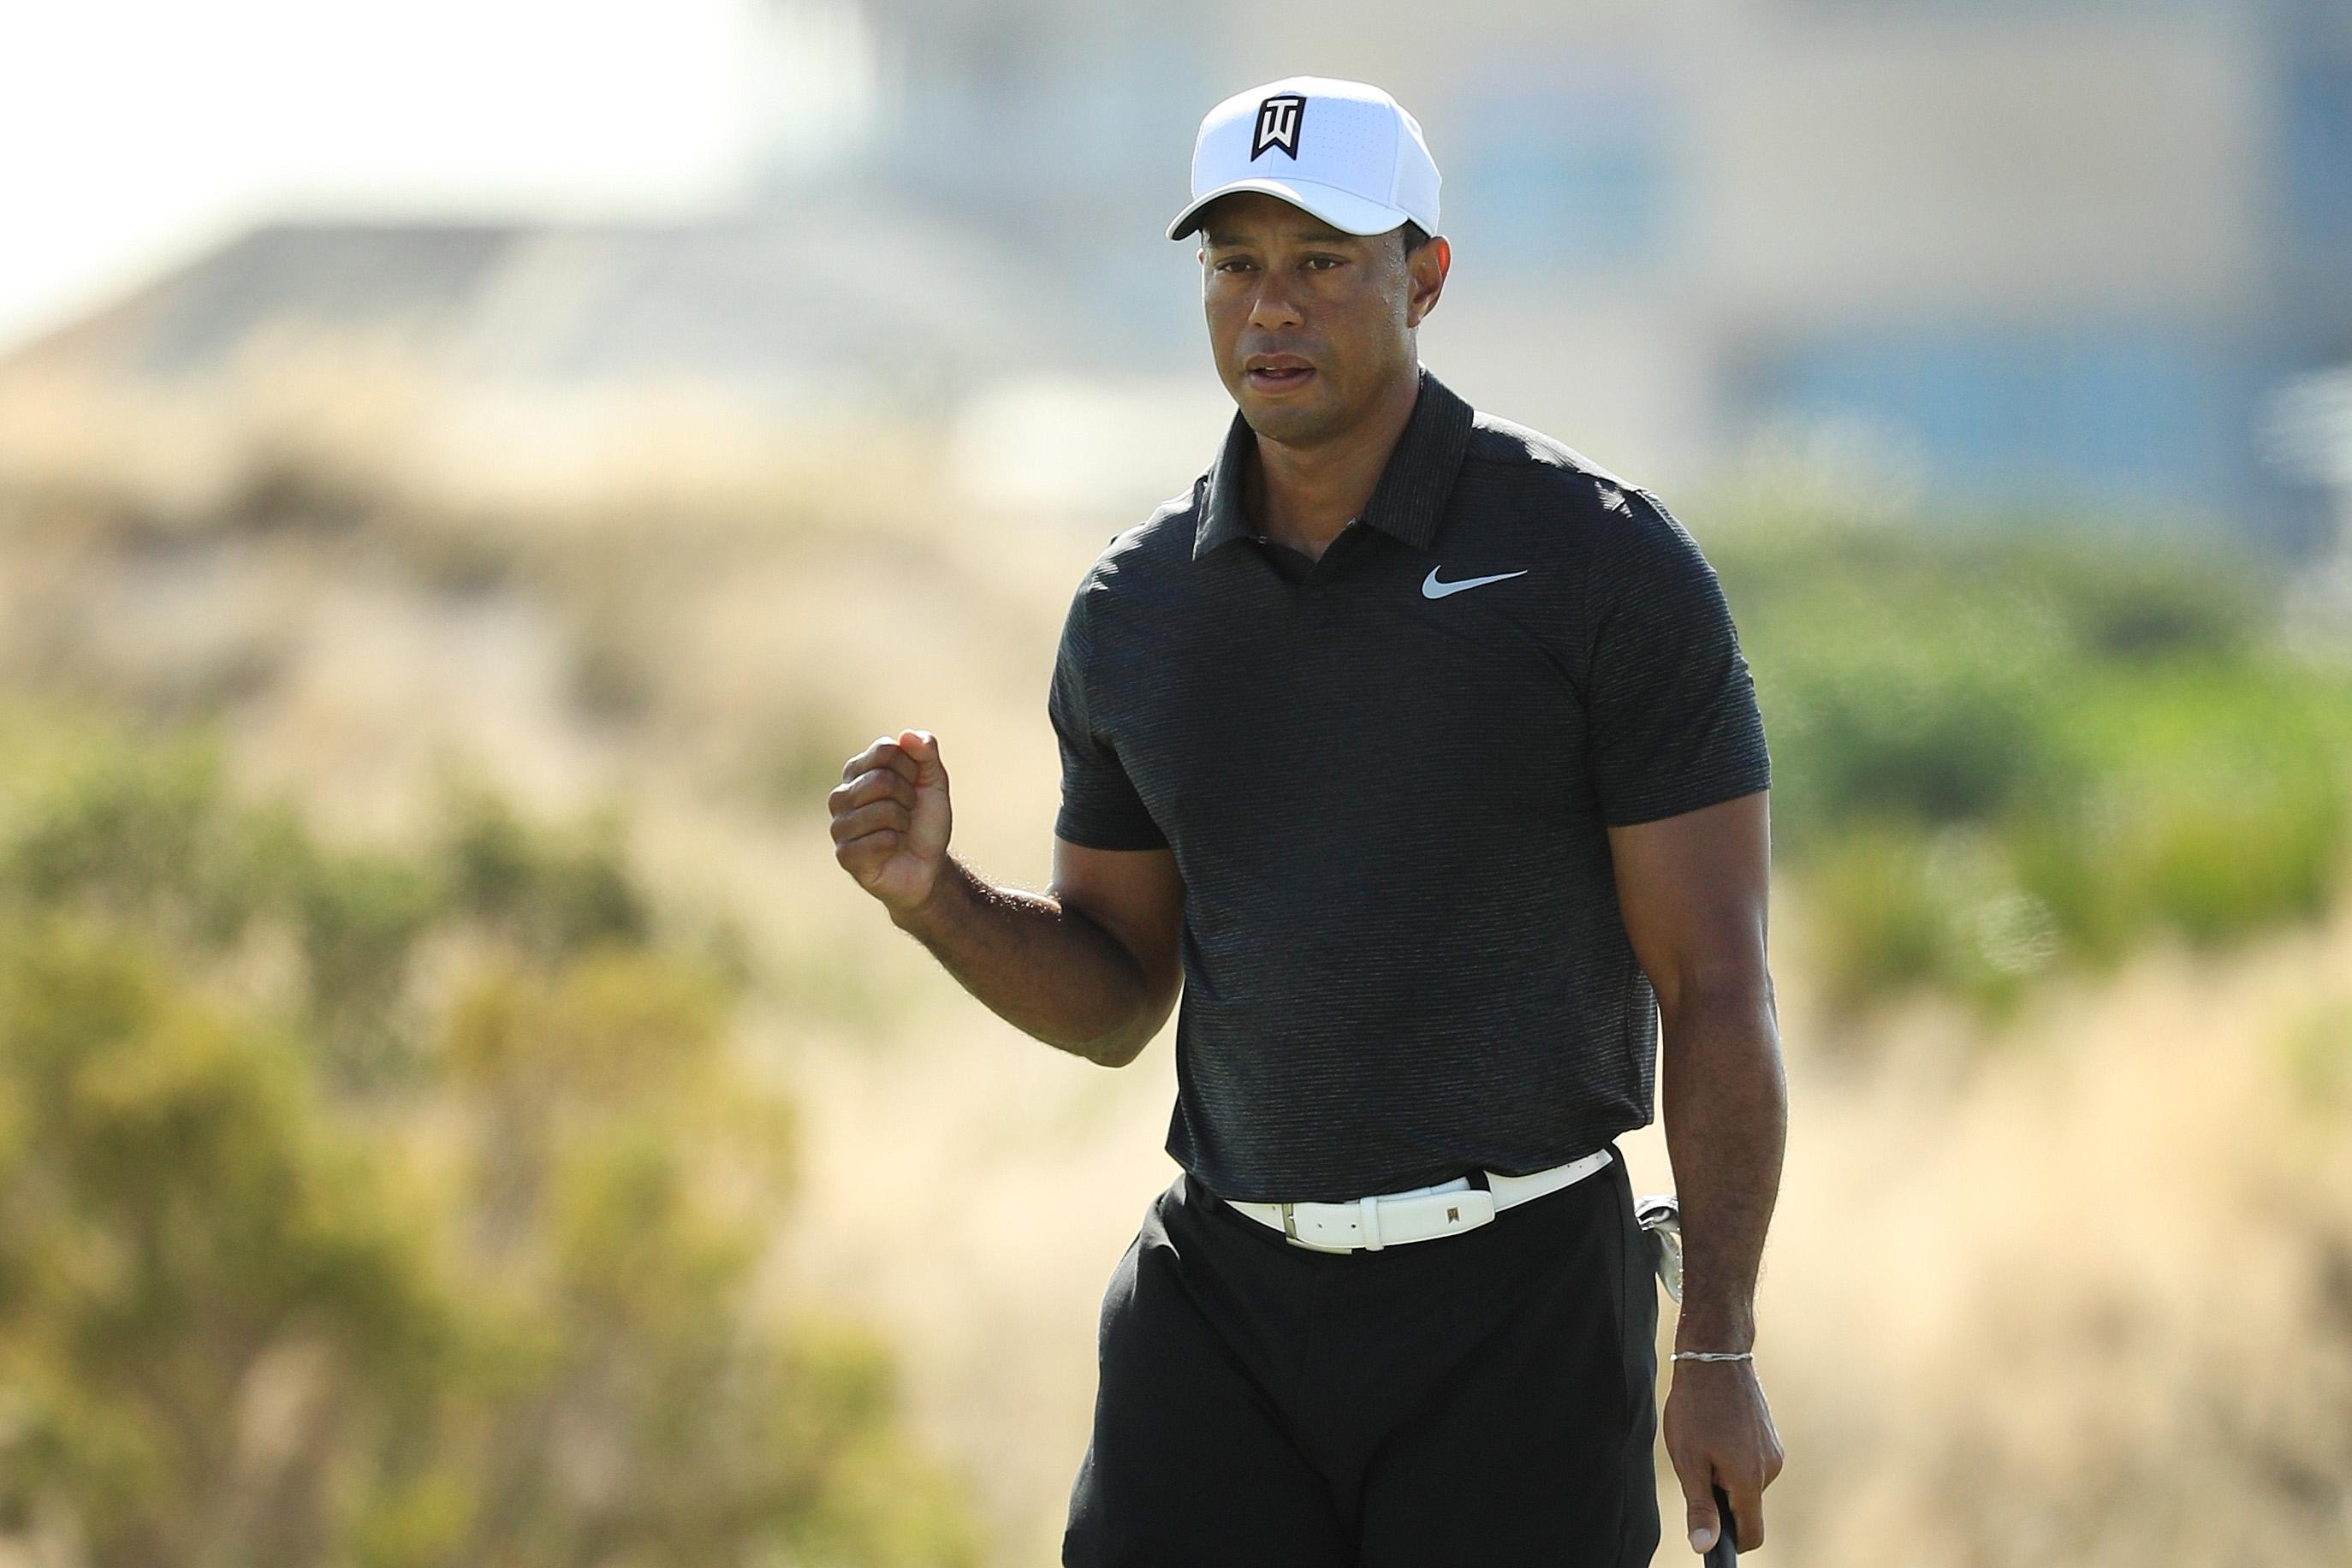 Woods tied for fifth after firing a 68 in Bahamas